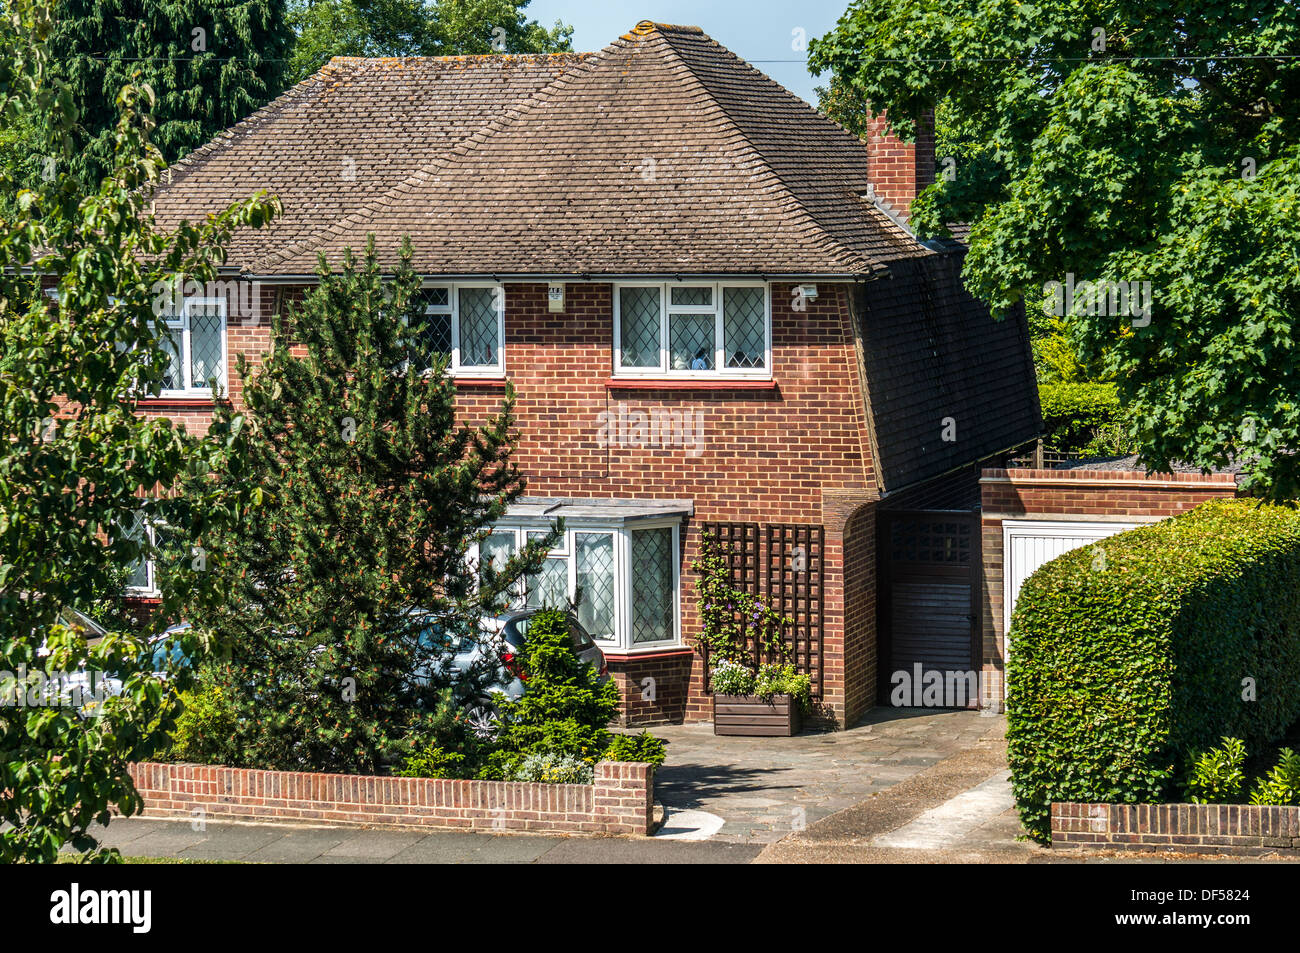 A period (1930s) detached house, typical of the area in Banstead, Surrey, UK. - Stock Image